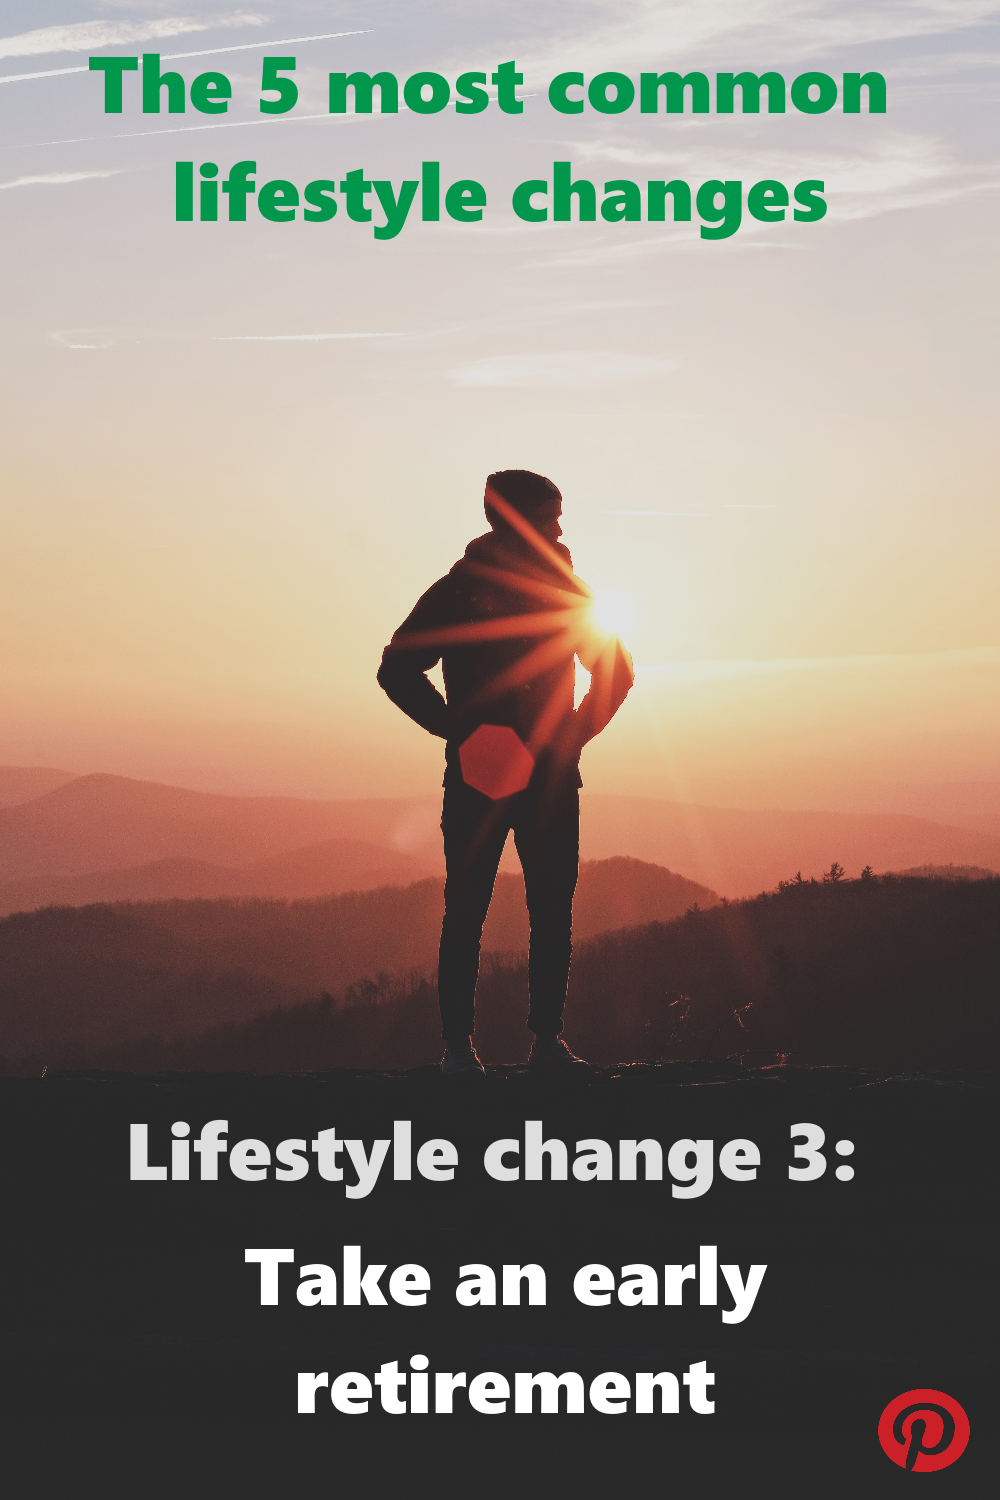 The 5 most common lifestyle changes – #3 Take an early retirement